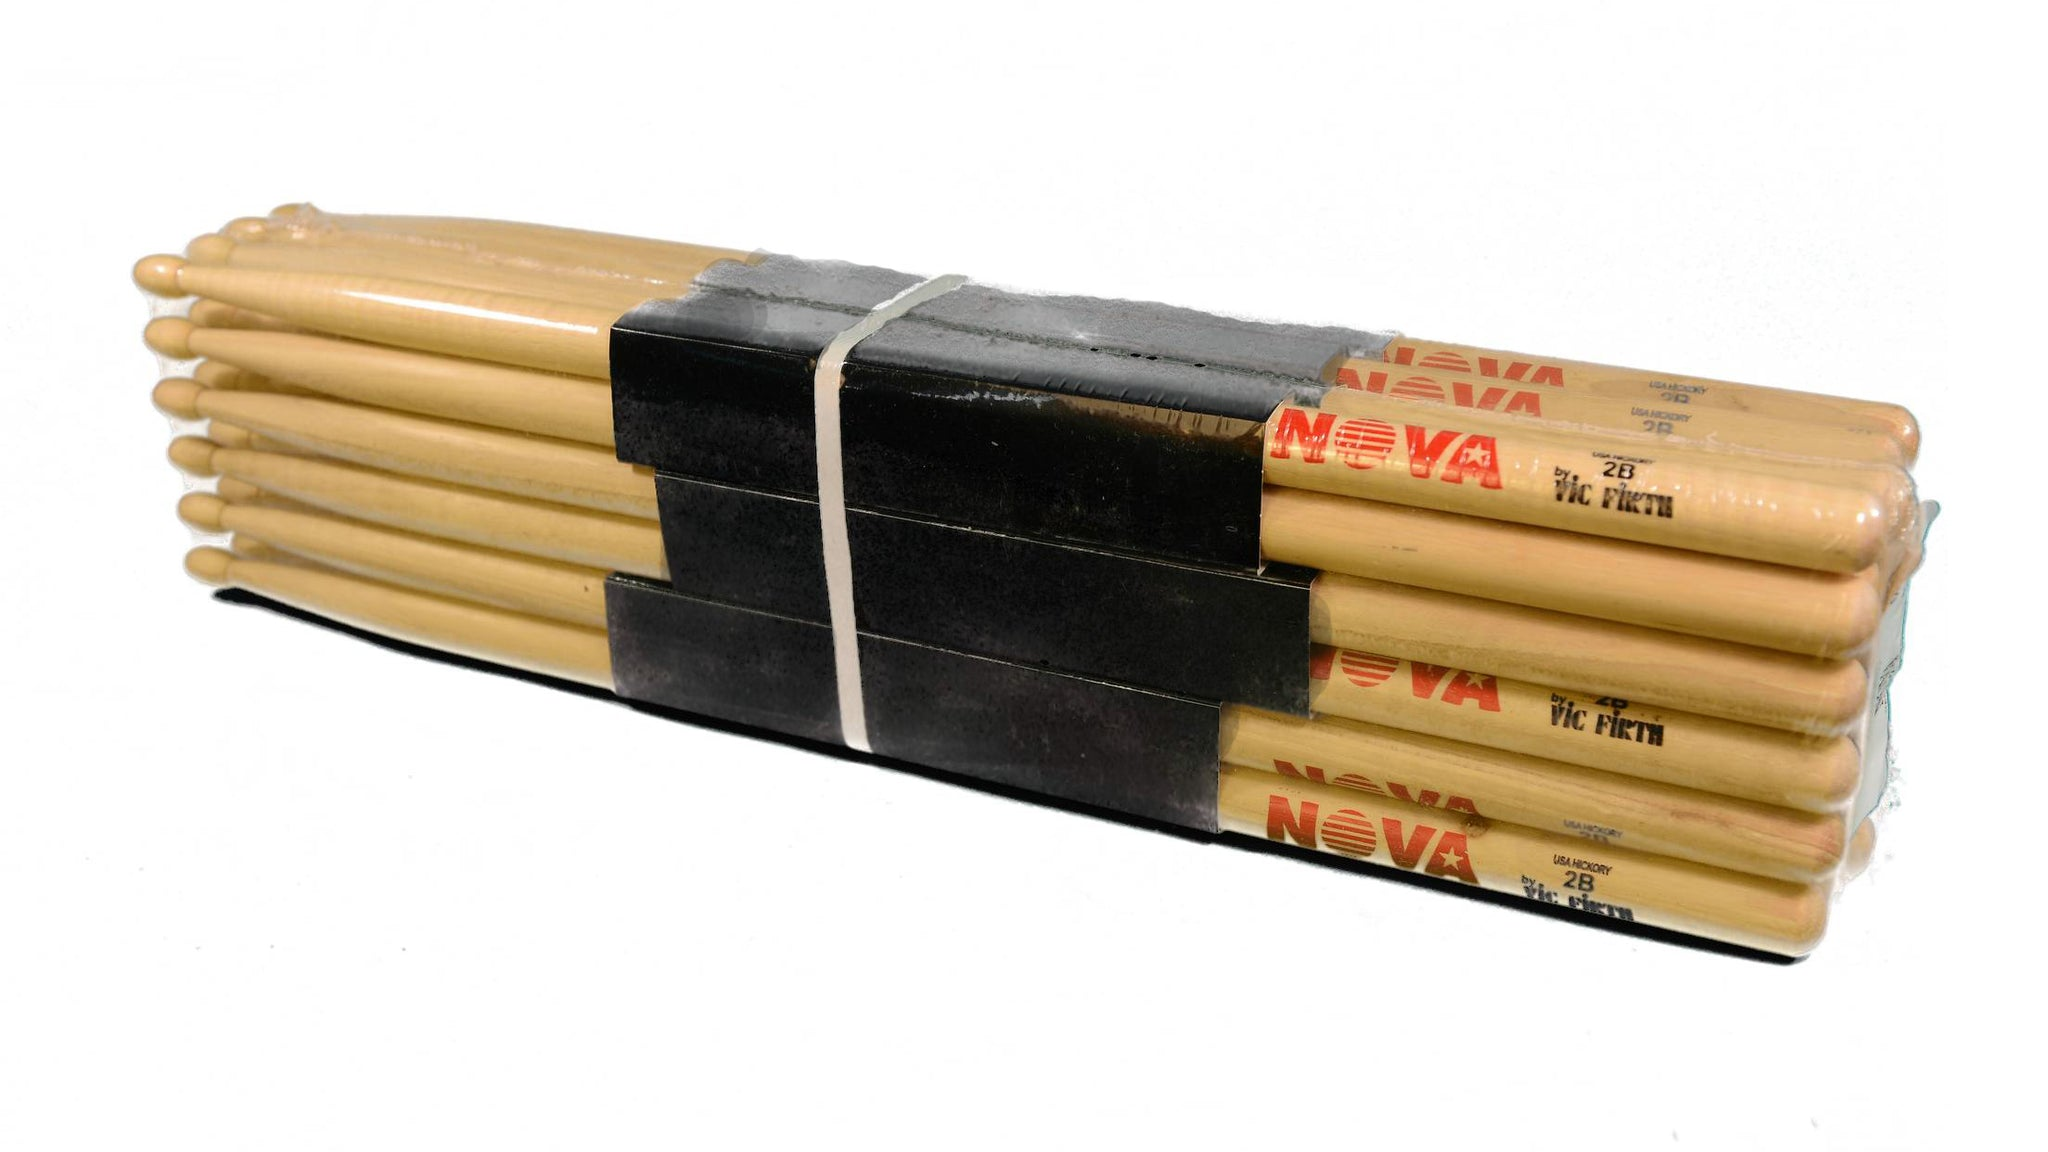 (12-Pairs) Vic Firth® NOVA® 2B Hickory Drumsticks, Wood Sticks, Wood Tip. #N2B